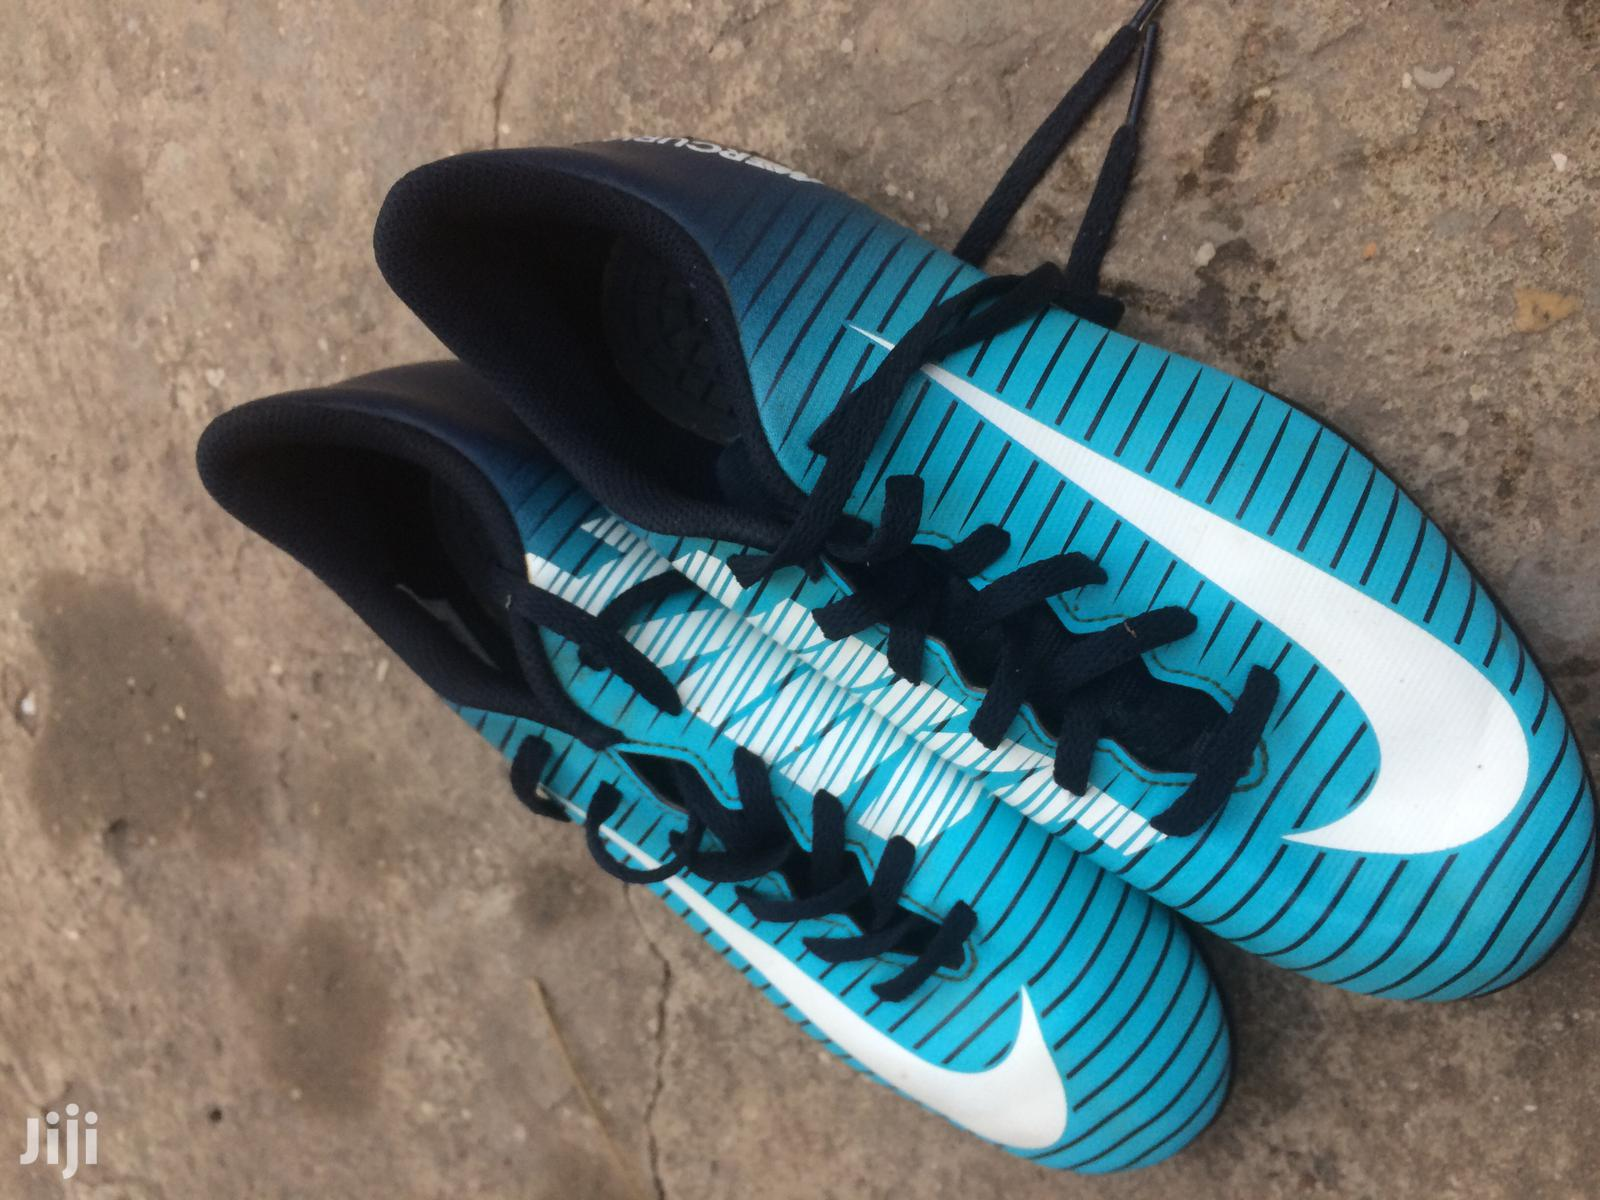 Archive: Mercurial Blue Nike Football Boots